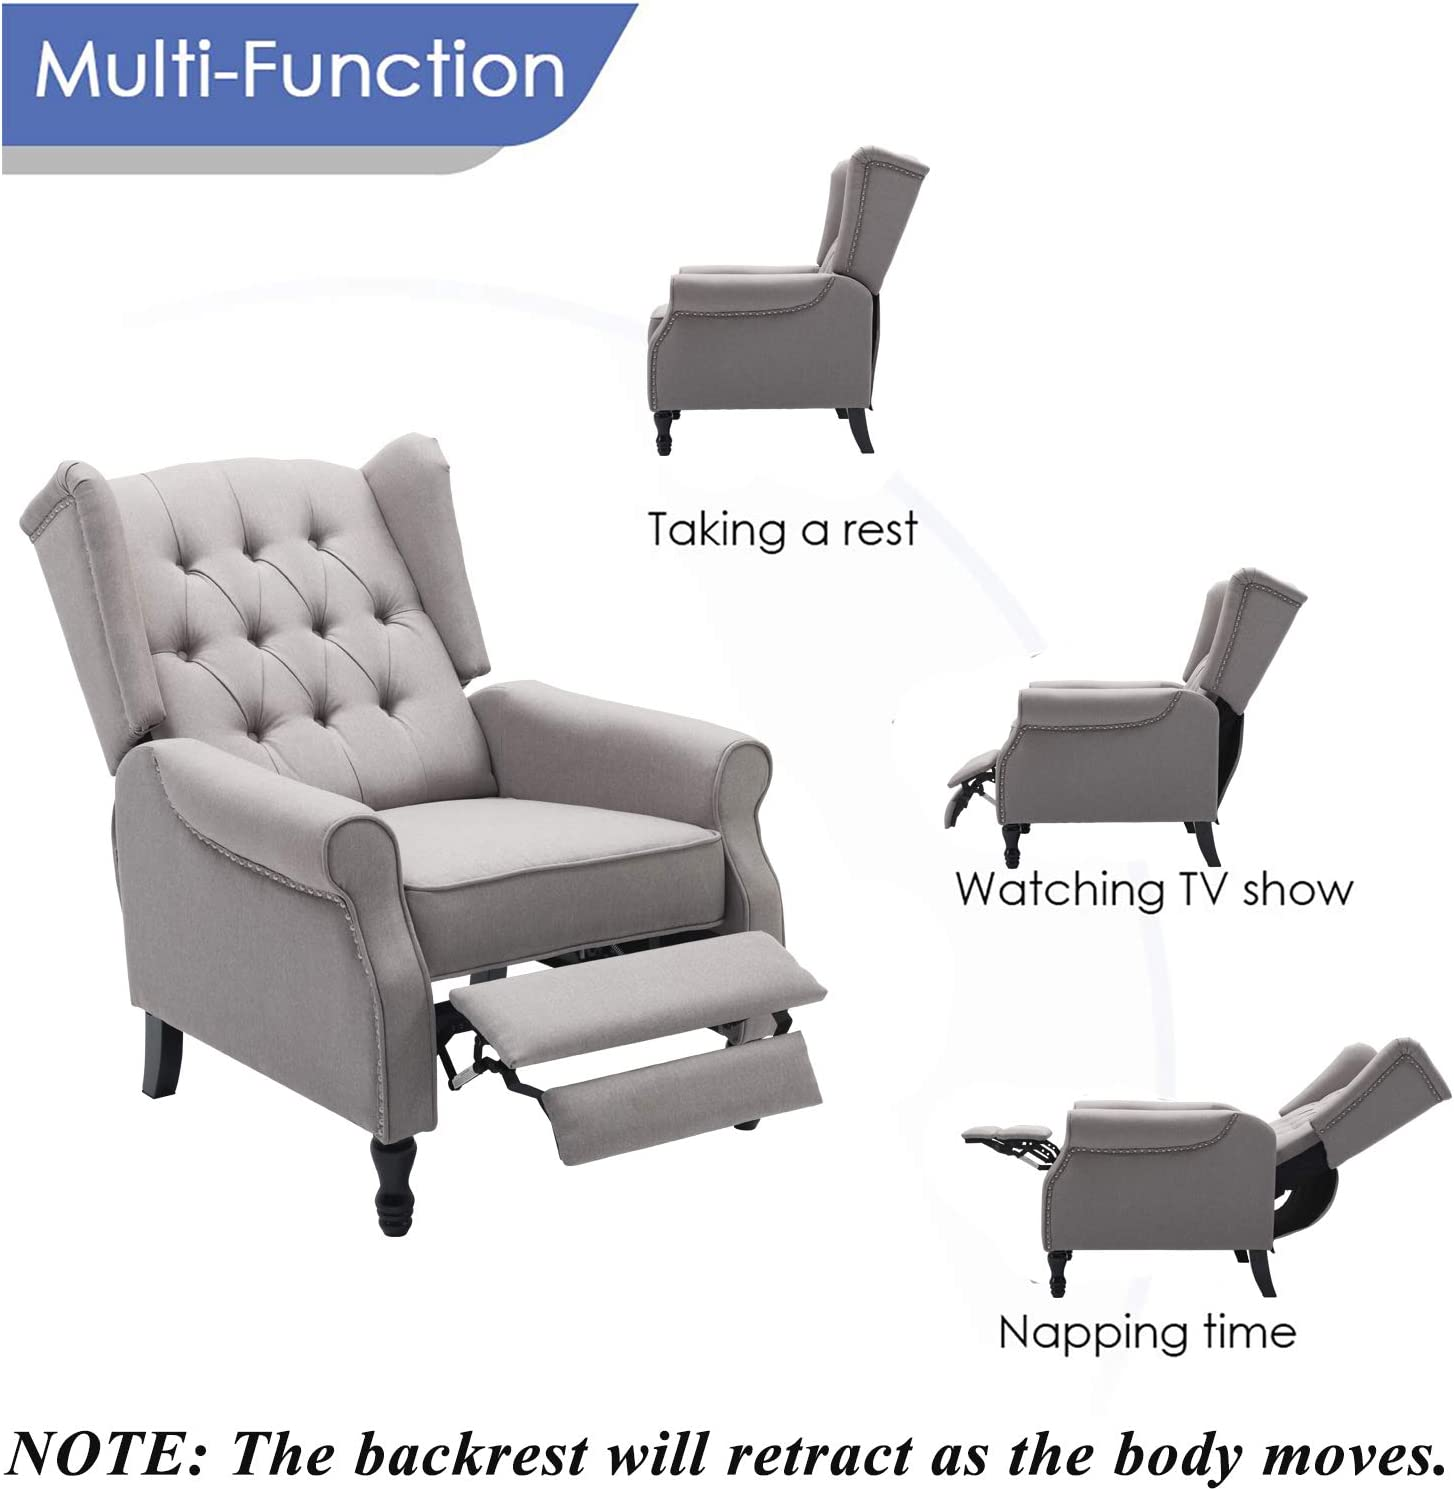 Artechworks Tufted Fabric Push Back Arm Chair Recliner Single Reclining Fabric for Adjustable Club Chair Home Theater Padded Seating Living Room Lounge Modern Sofa(Grey)